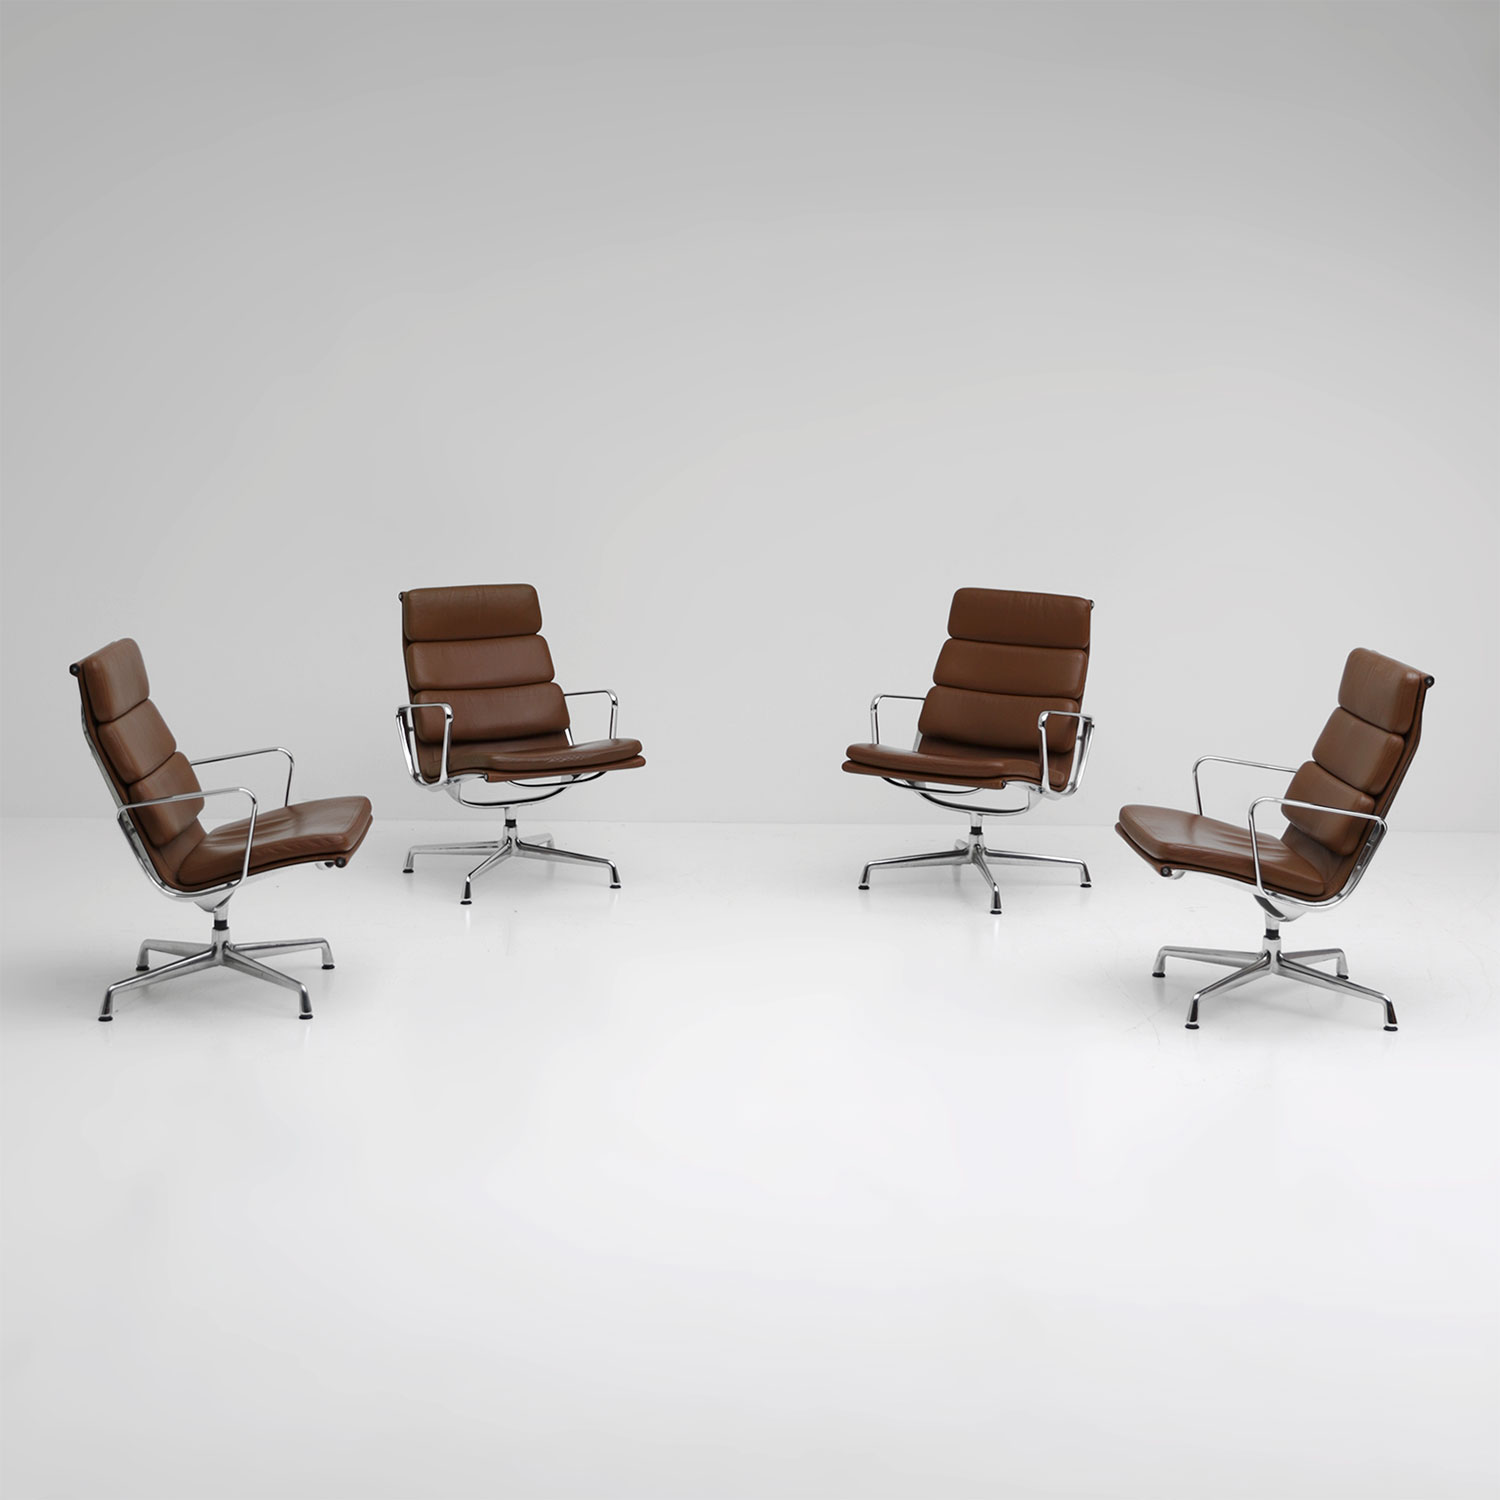 Eames chairs EA216 Vitra Edition